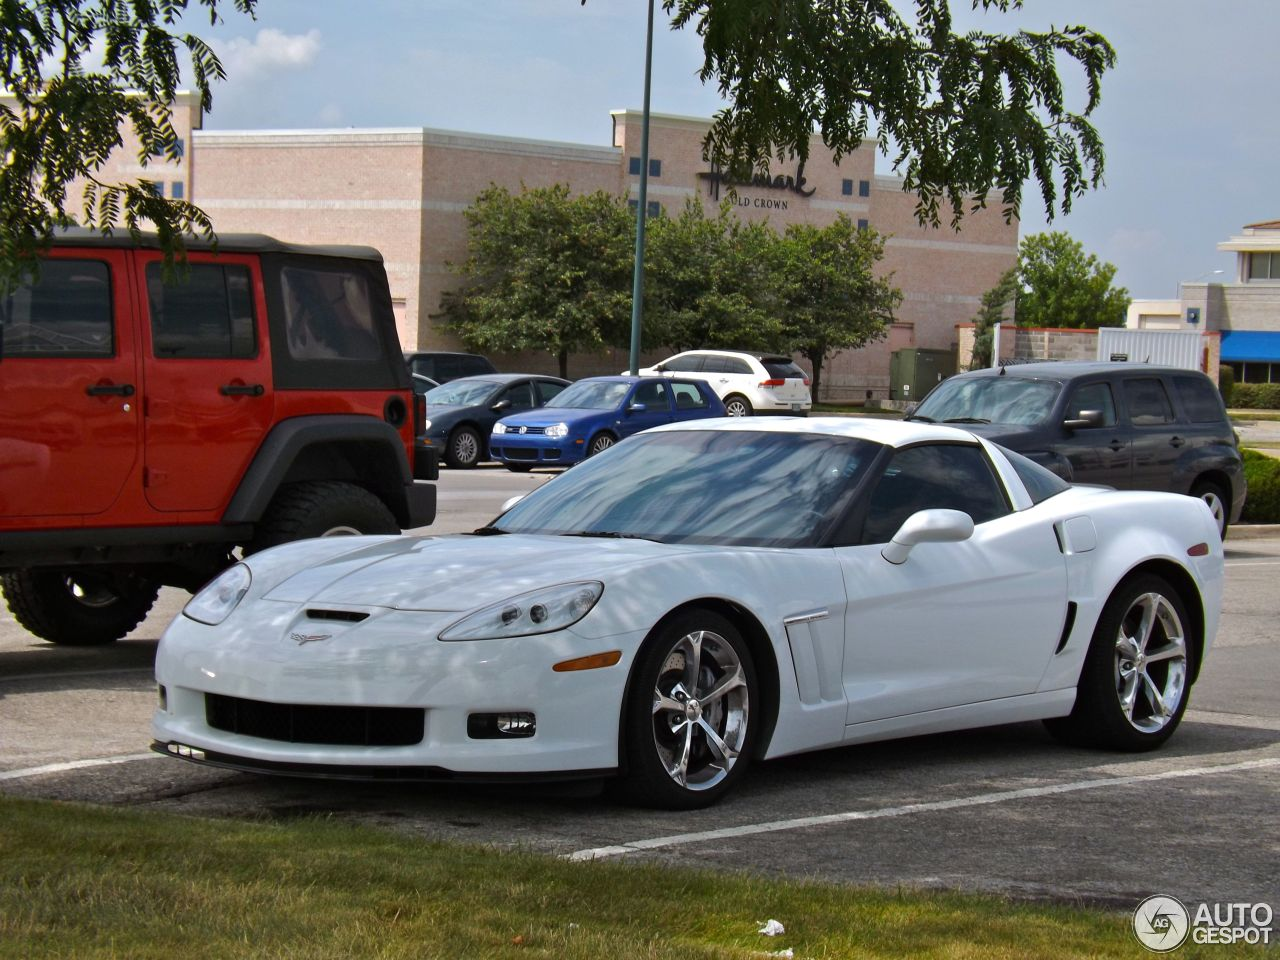 Chevrolet Corvette C6 Grand Sport 3 August 2013 Autogespot